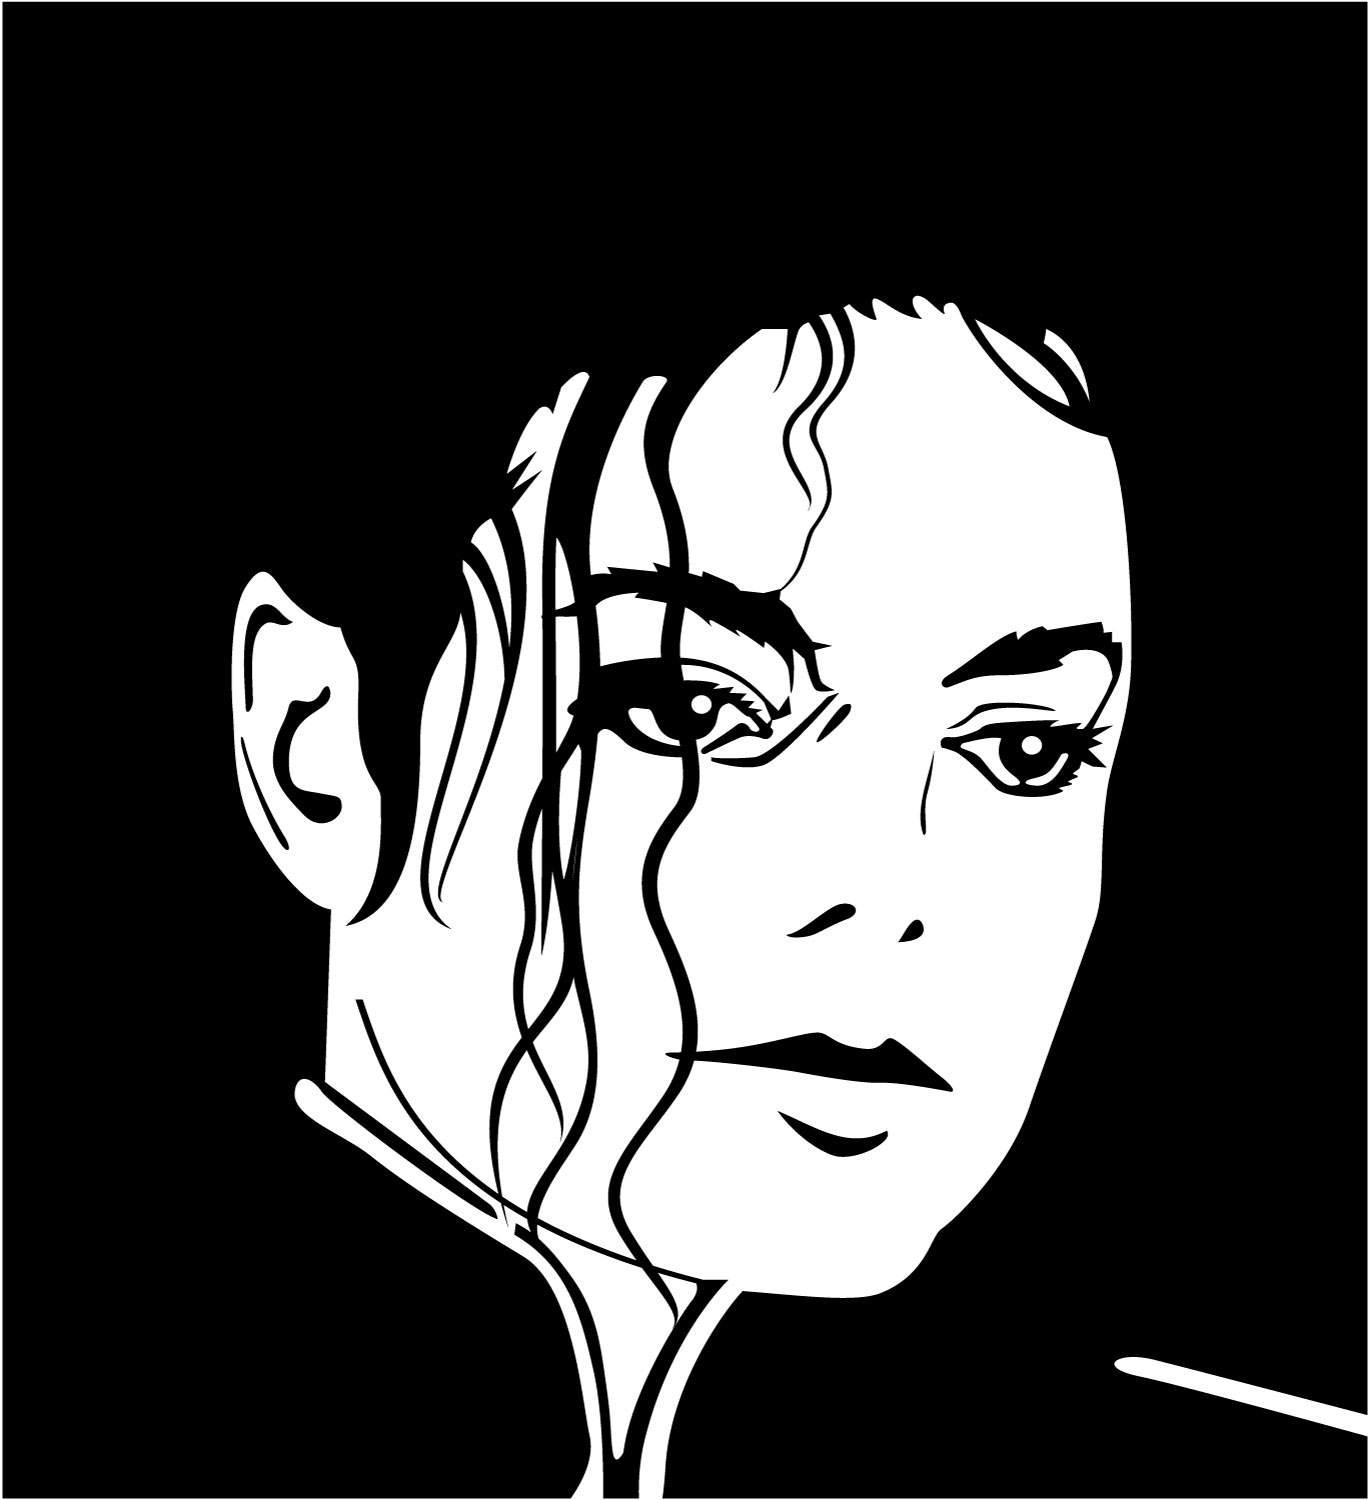 Description Michael-jackson-vector-2.jpg